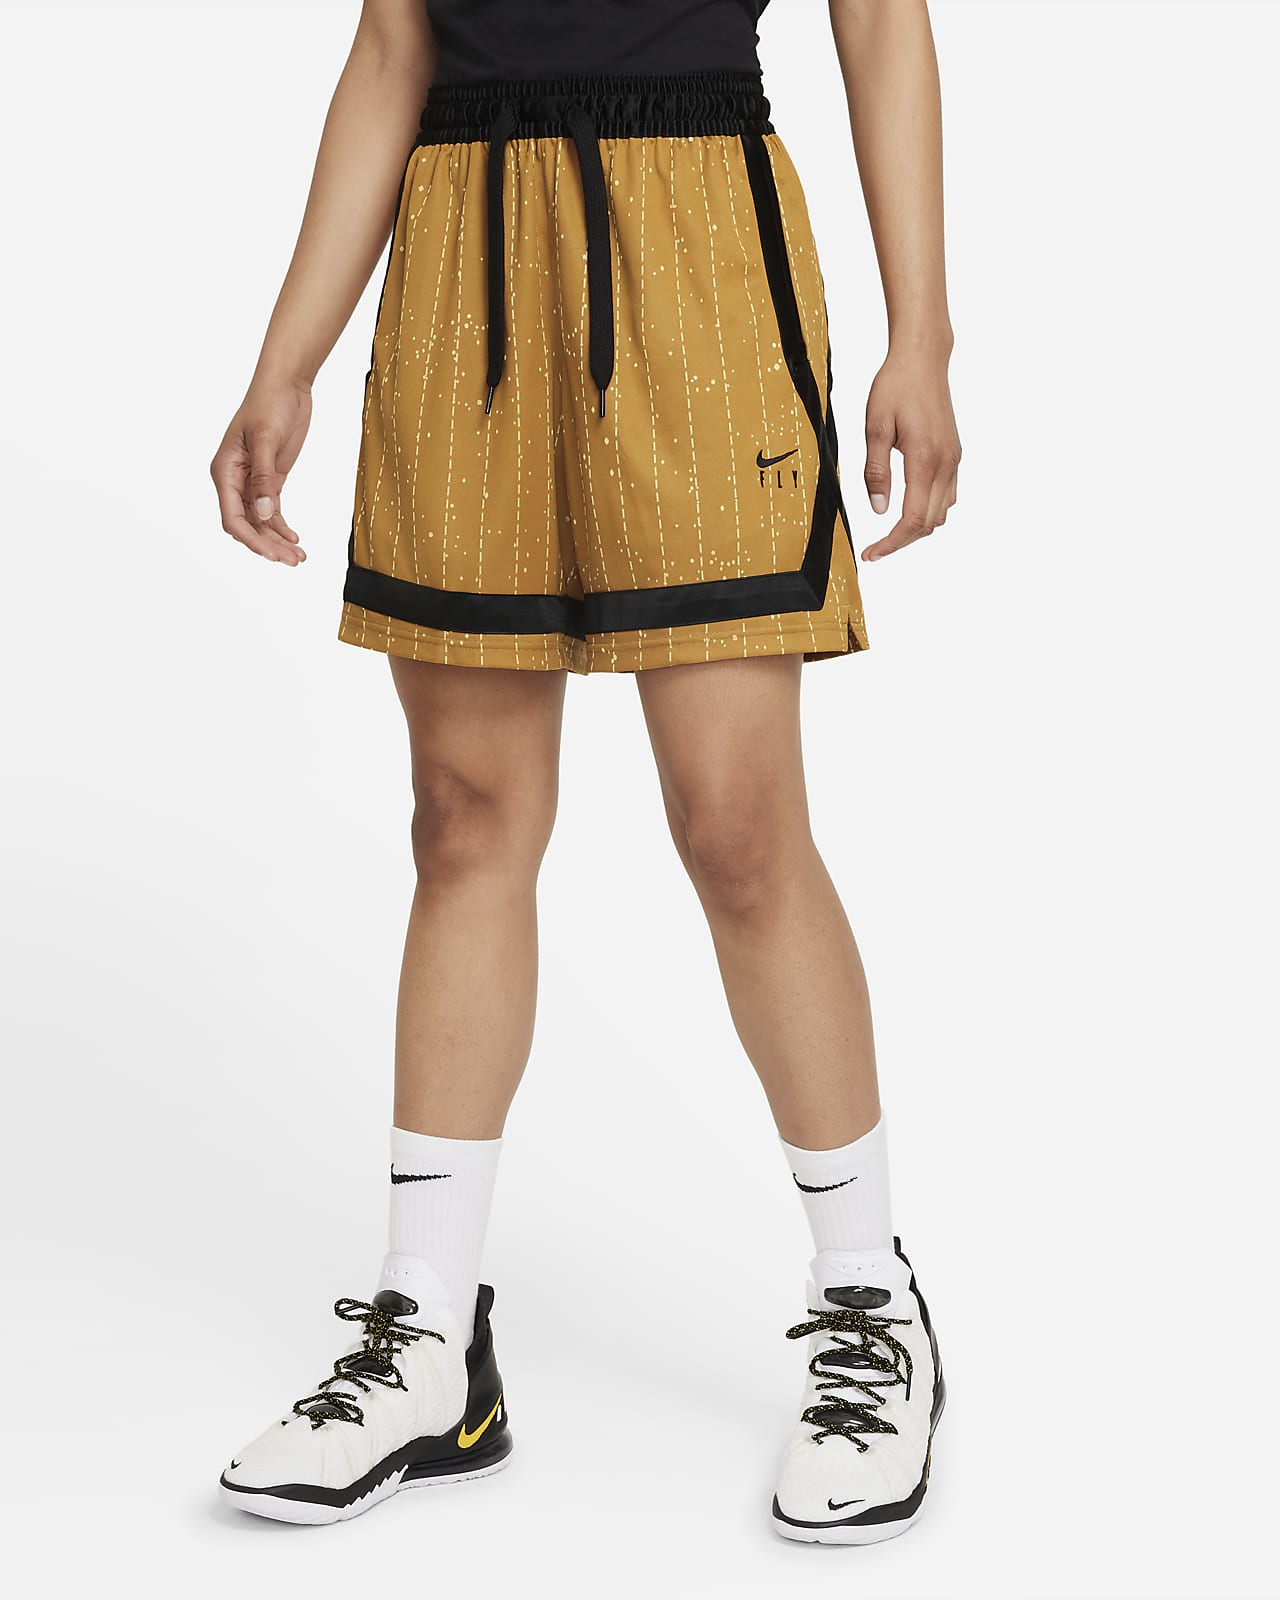 Nike Dri-FIT Swoosh Fly Crossover Women's Basketball Shorts